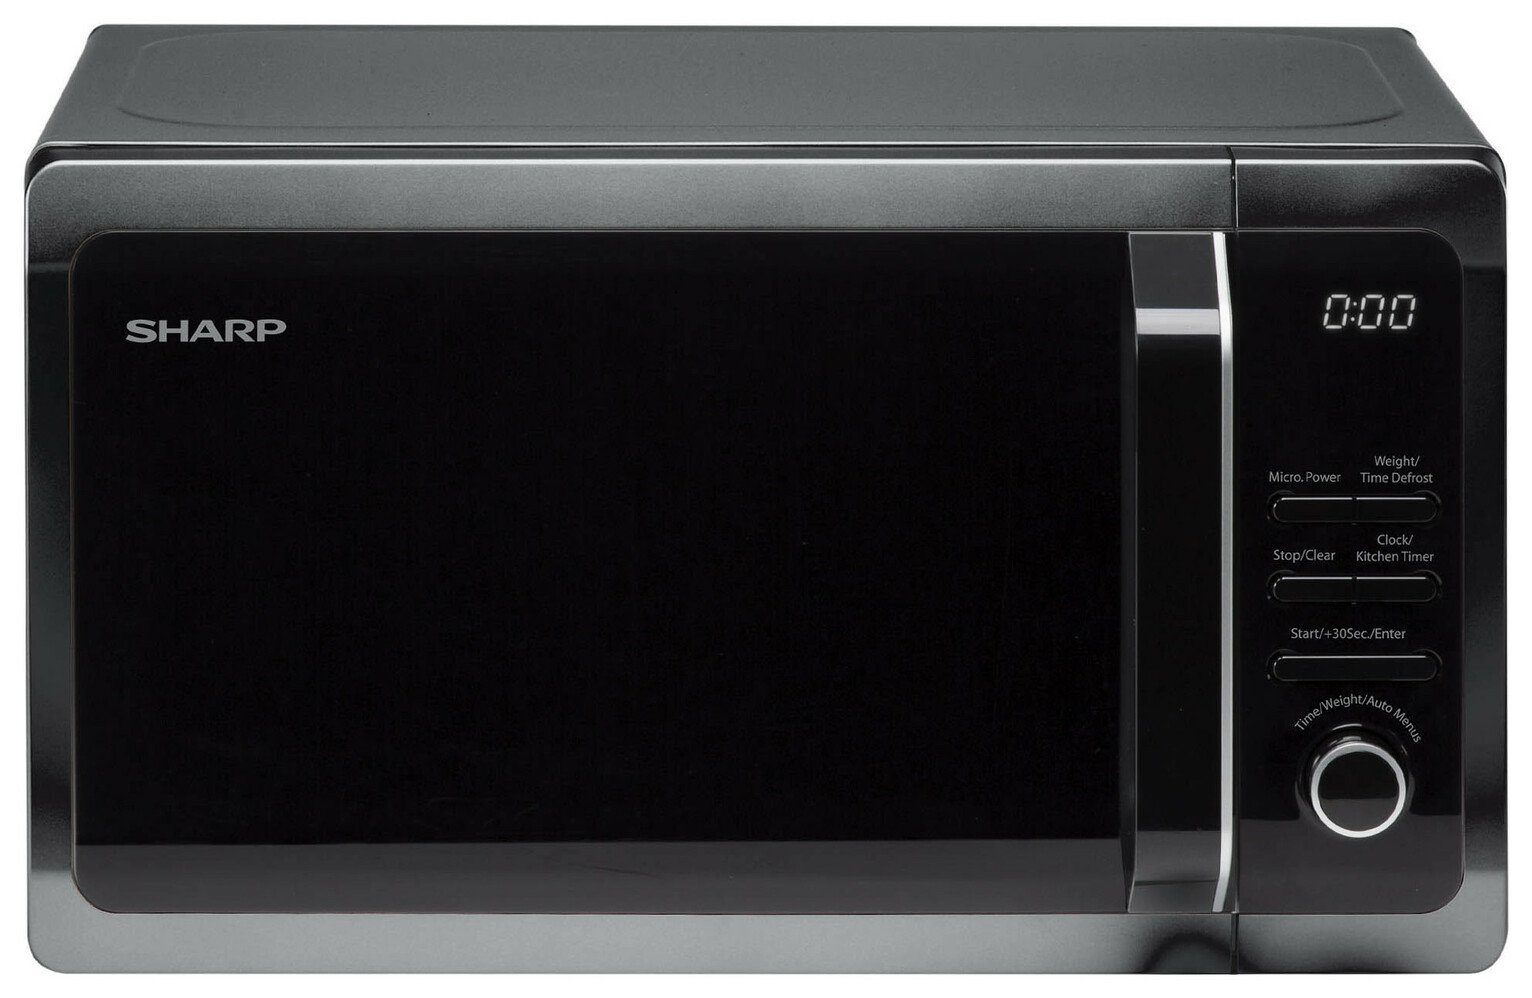 Sharp 800W Microwave R274KM - Black